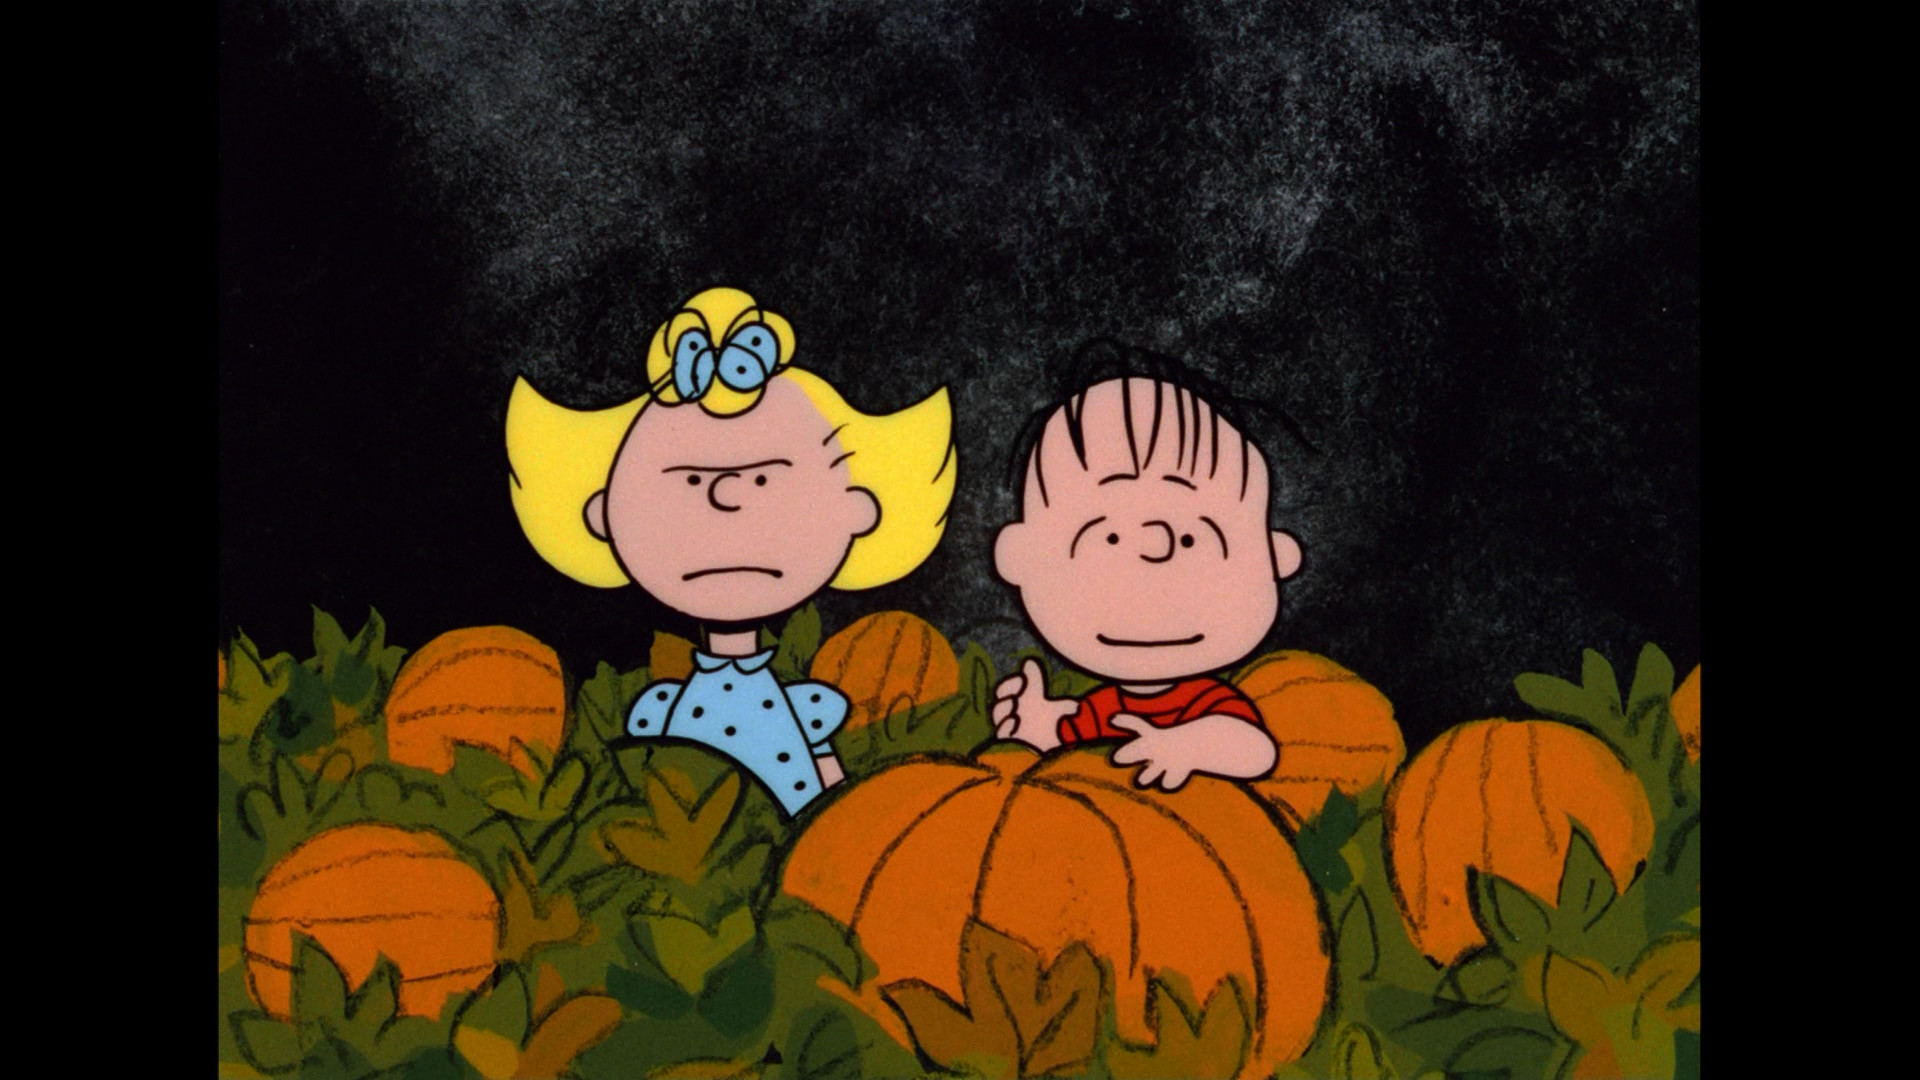 Snoopy Halloween Wallpaper (52+ images)